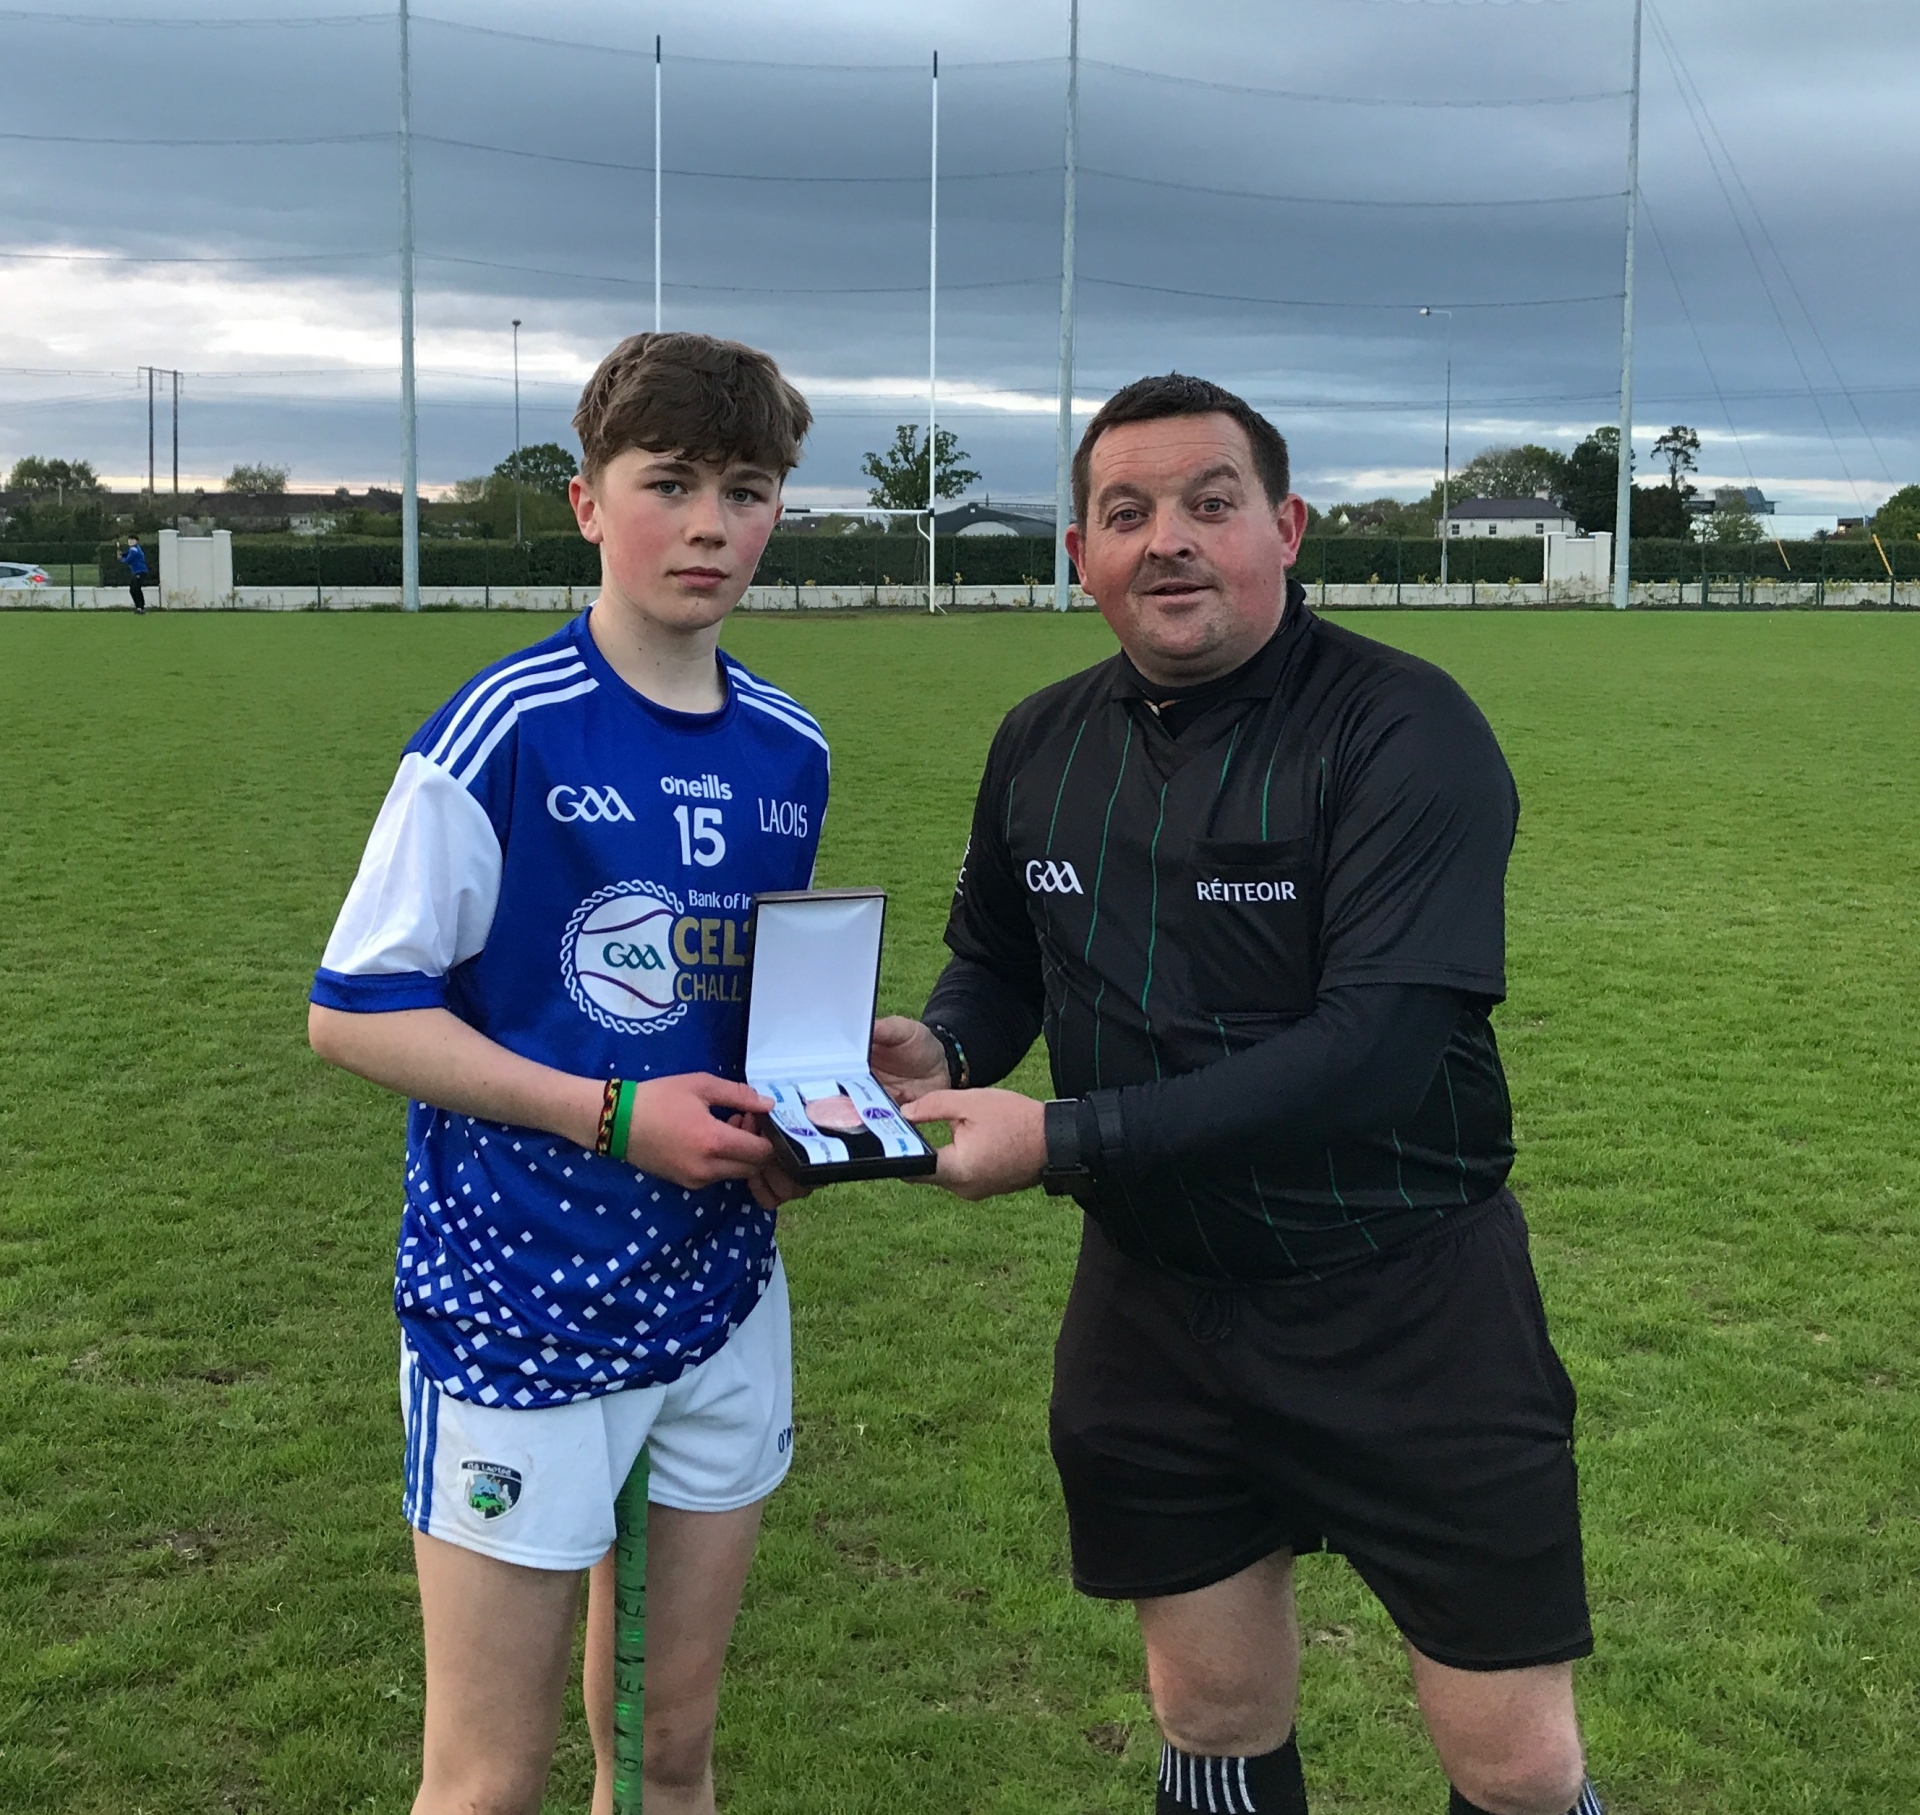 Laois' Cillian Dunne receiving his Best & Fairest award from the match referee.